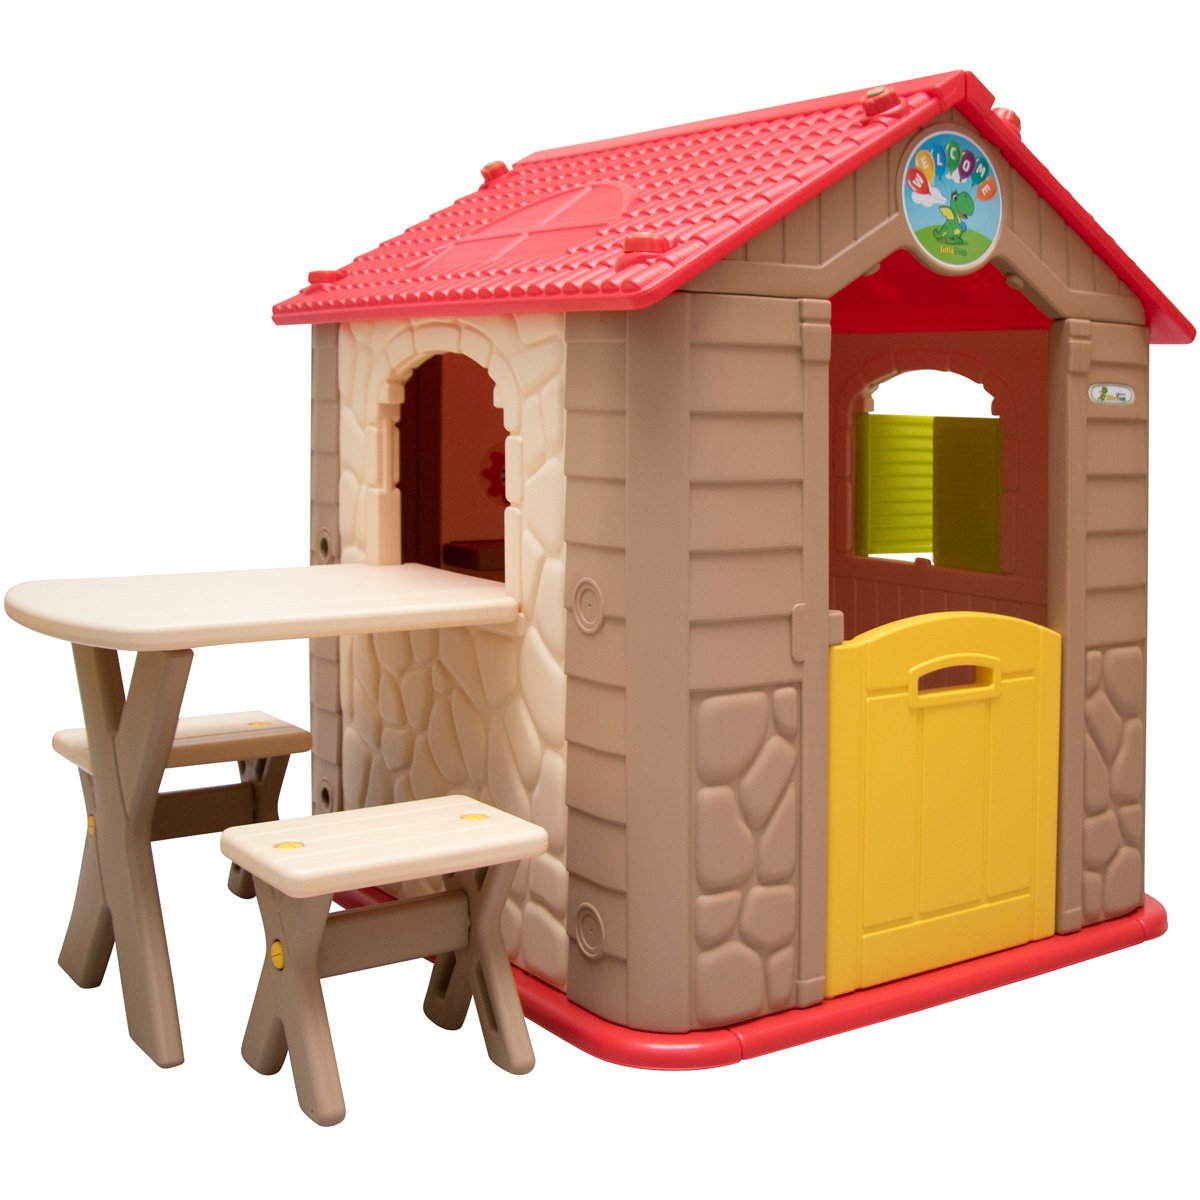 LittleTom childrens Playhouse incl 1 table 2 benches for boys and ...